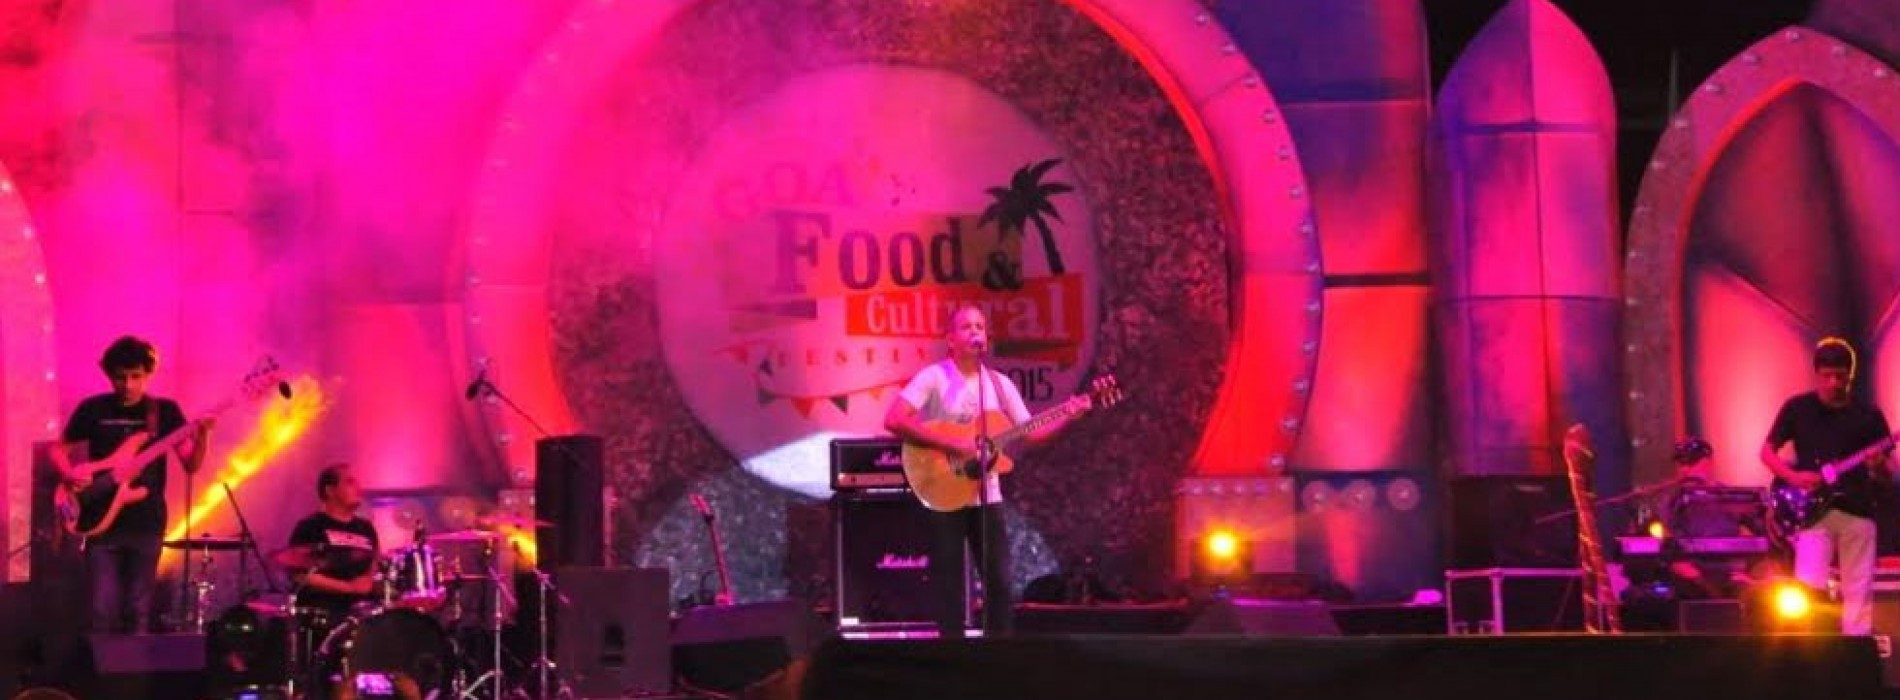 Stage set for Tourism Events: Shigmo, Goa Food & Cultural festival 2016